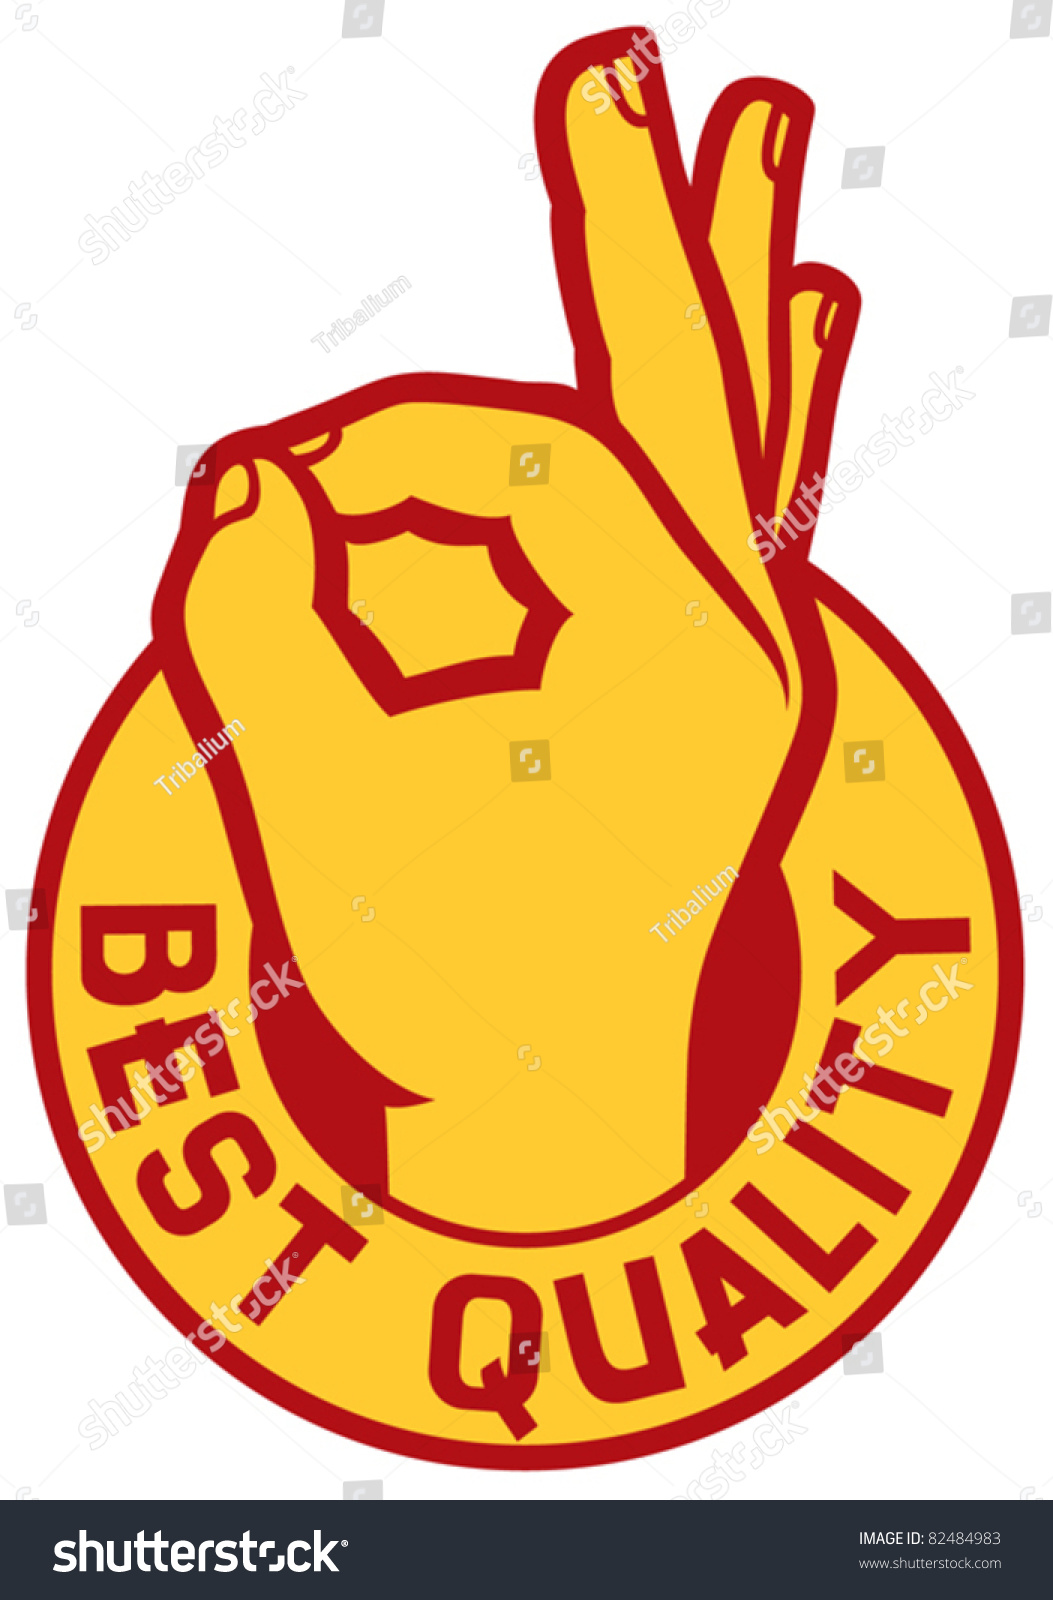 Best Quality Symbol Man Hand Showing Stock Vector 82484983